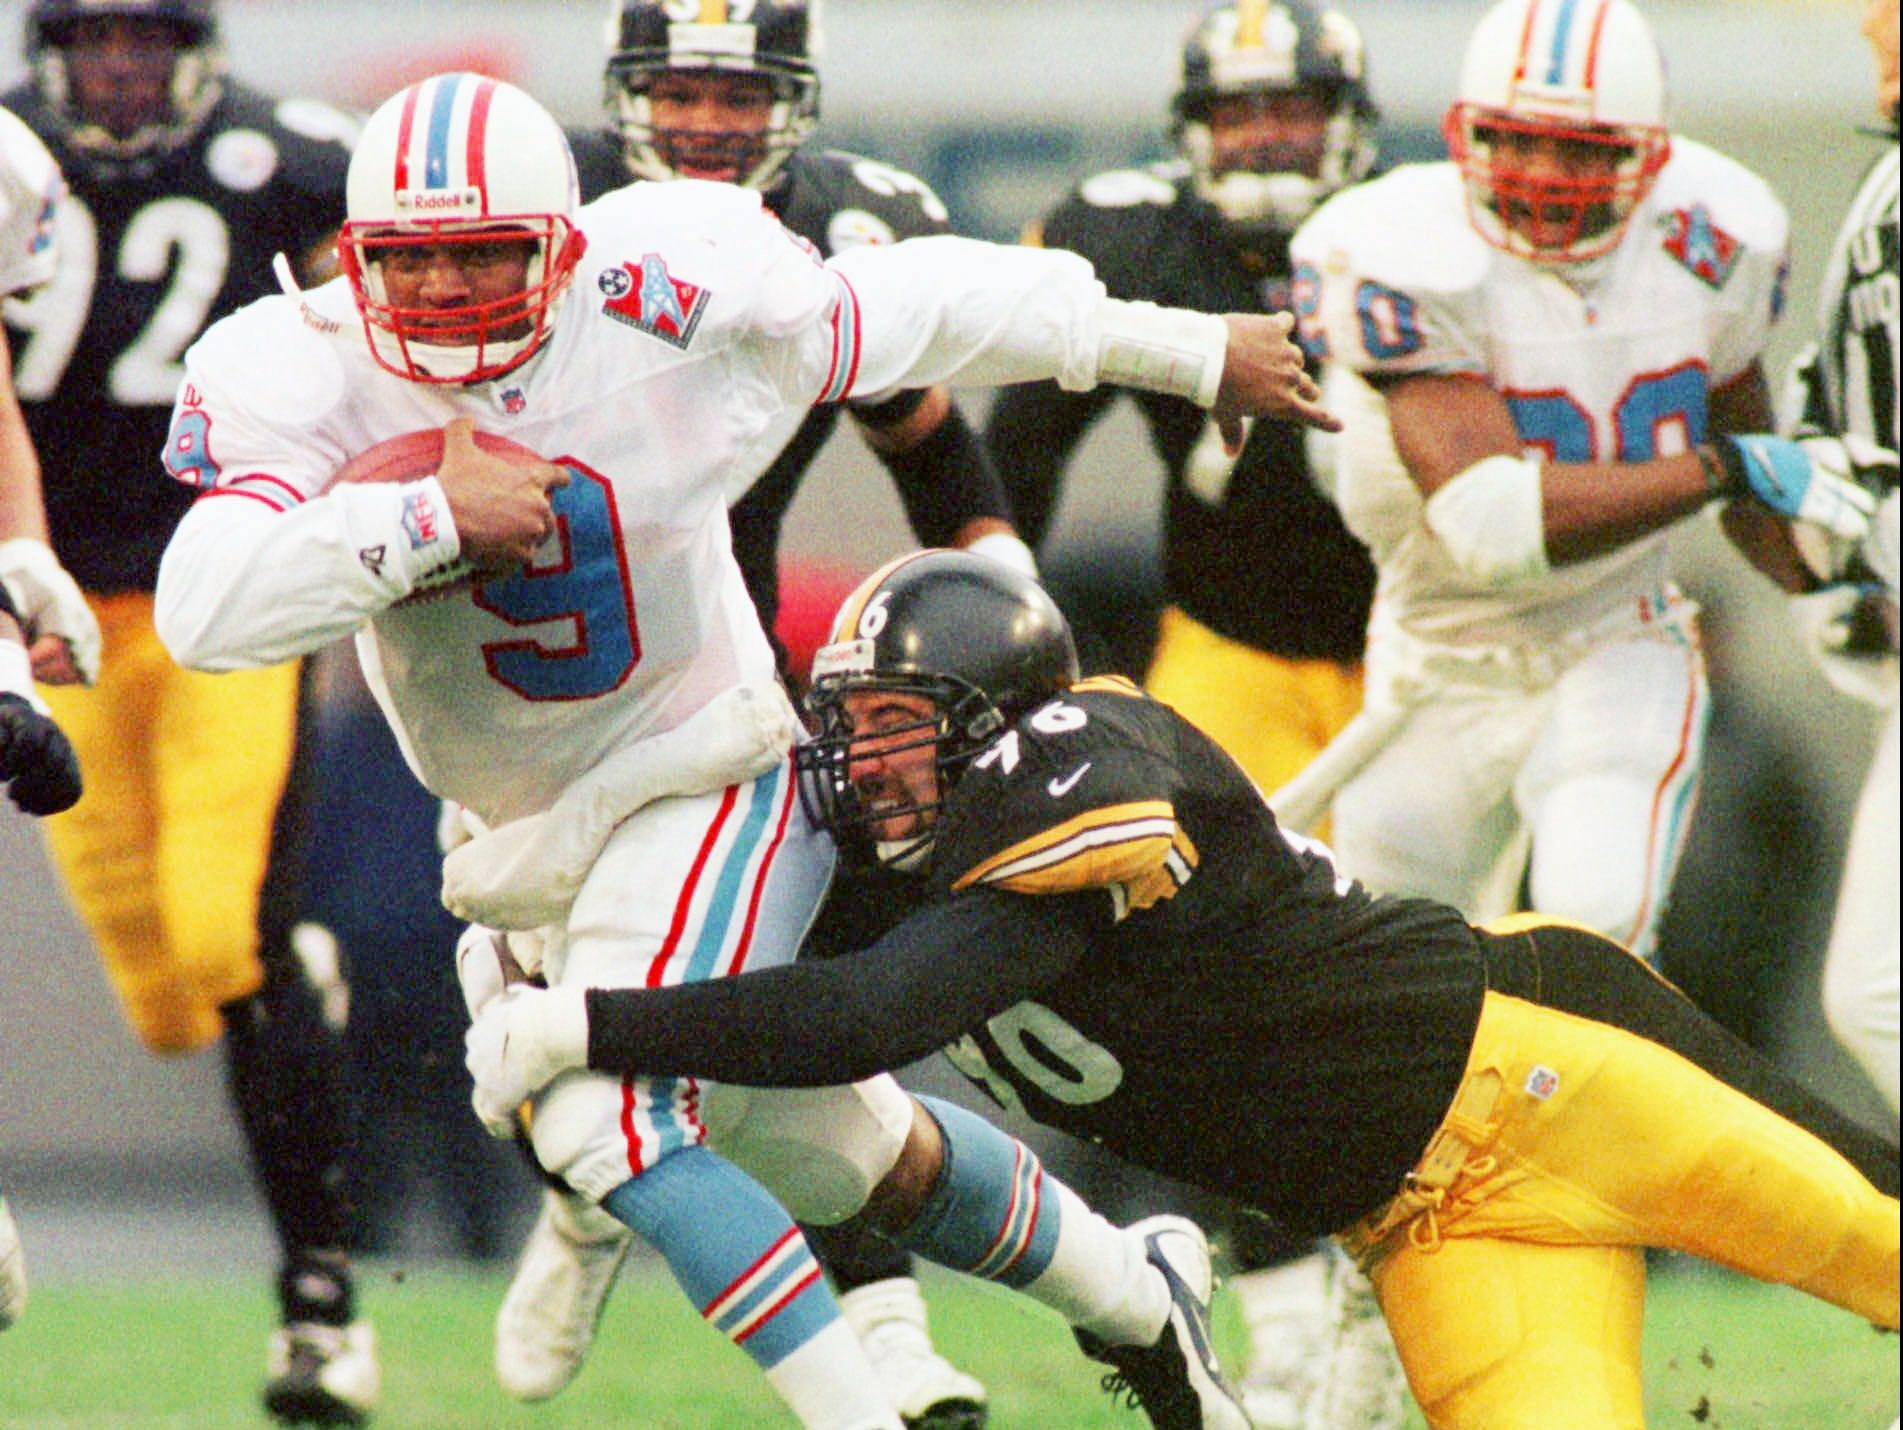 Tennessee Oilers quarterback Steve McNair (9) is brought down by Pittsburgh Steelers defender Mike Vrabel (96) after a 12-yard gain by McNair in the second quarter of the Oilers' 16-6 win Dec. 21, 1997 in Memphis. McNair passed for 102 yards and was the team's leading rusher with 90 yards.